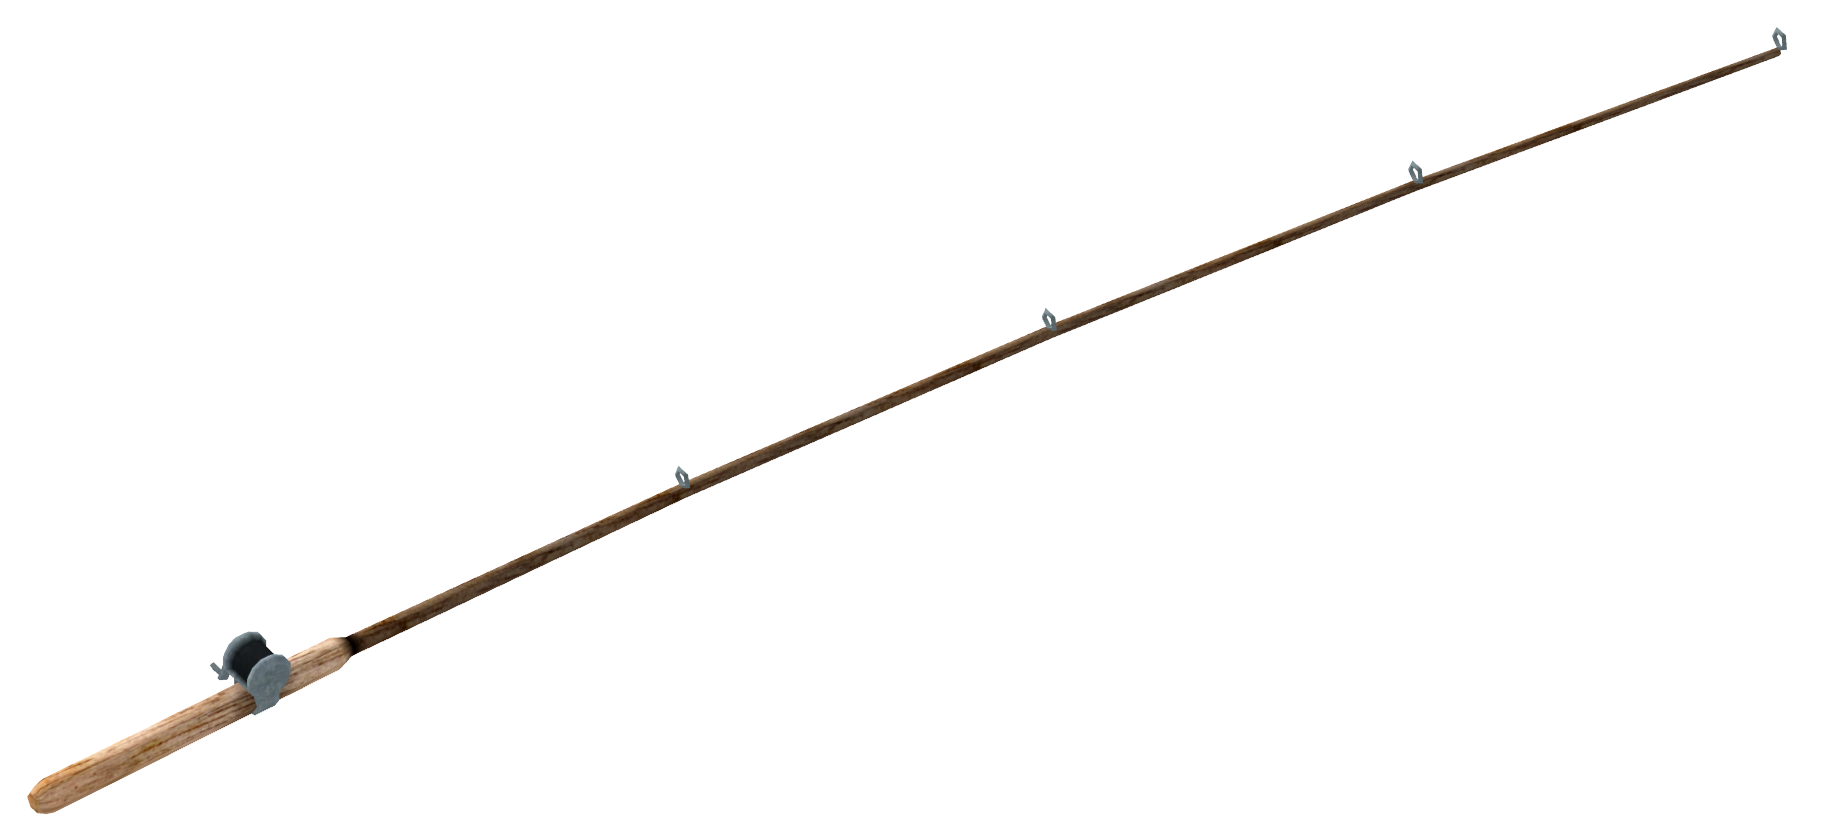 Picture Of Fishing Pole - ClipArt Best